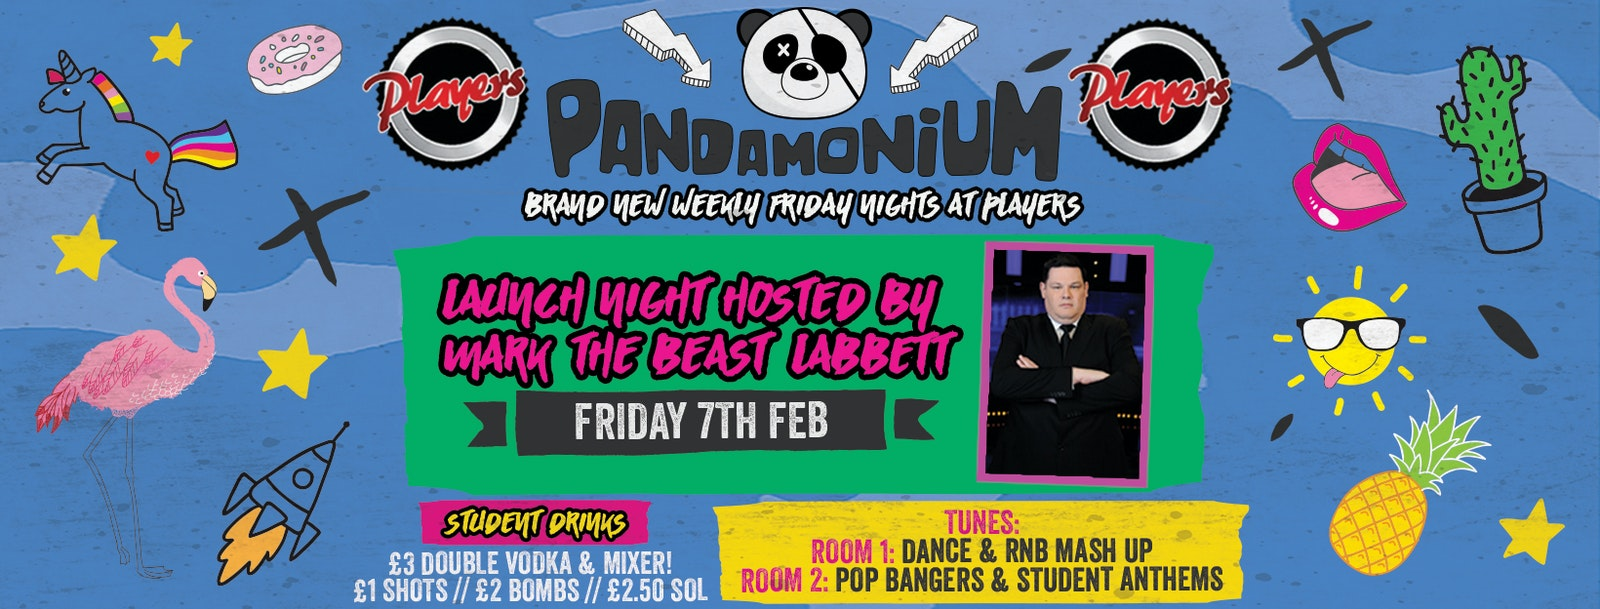 Pandamonium Fridays – Launch with Mark 'The Beast' Labbett